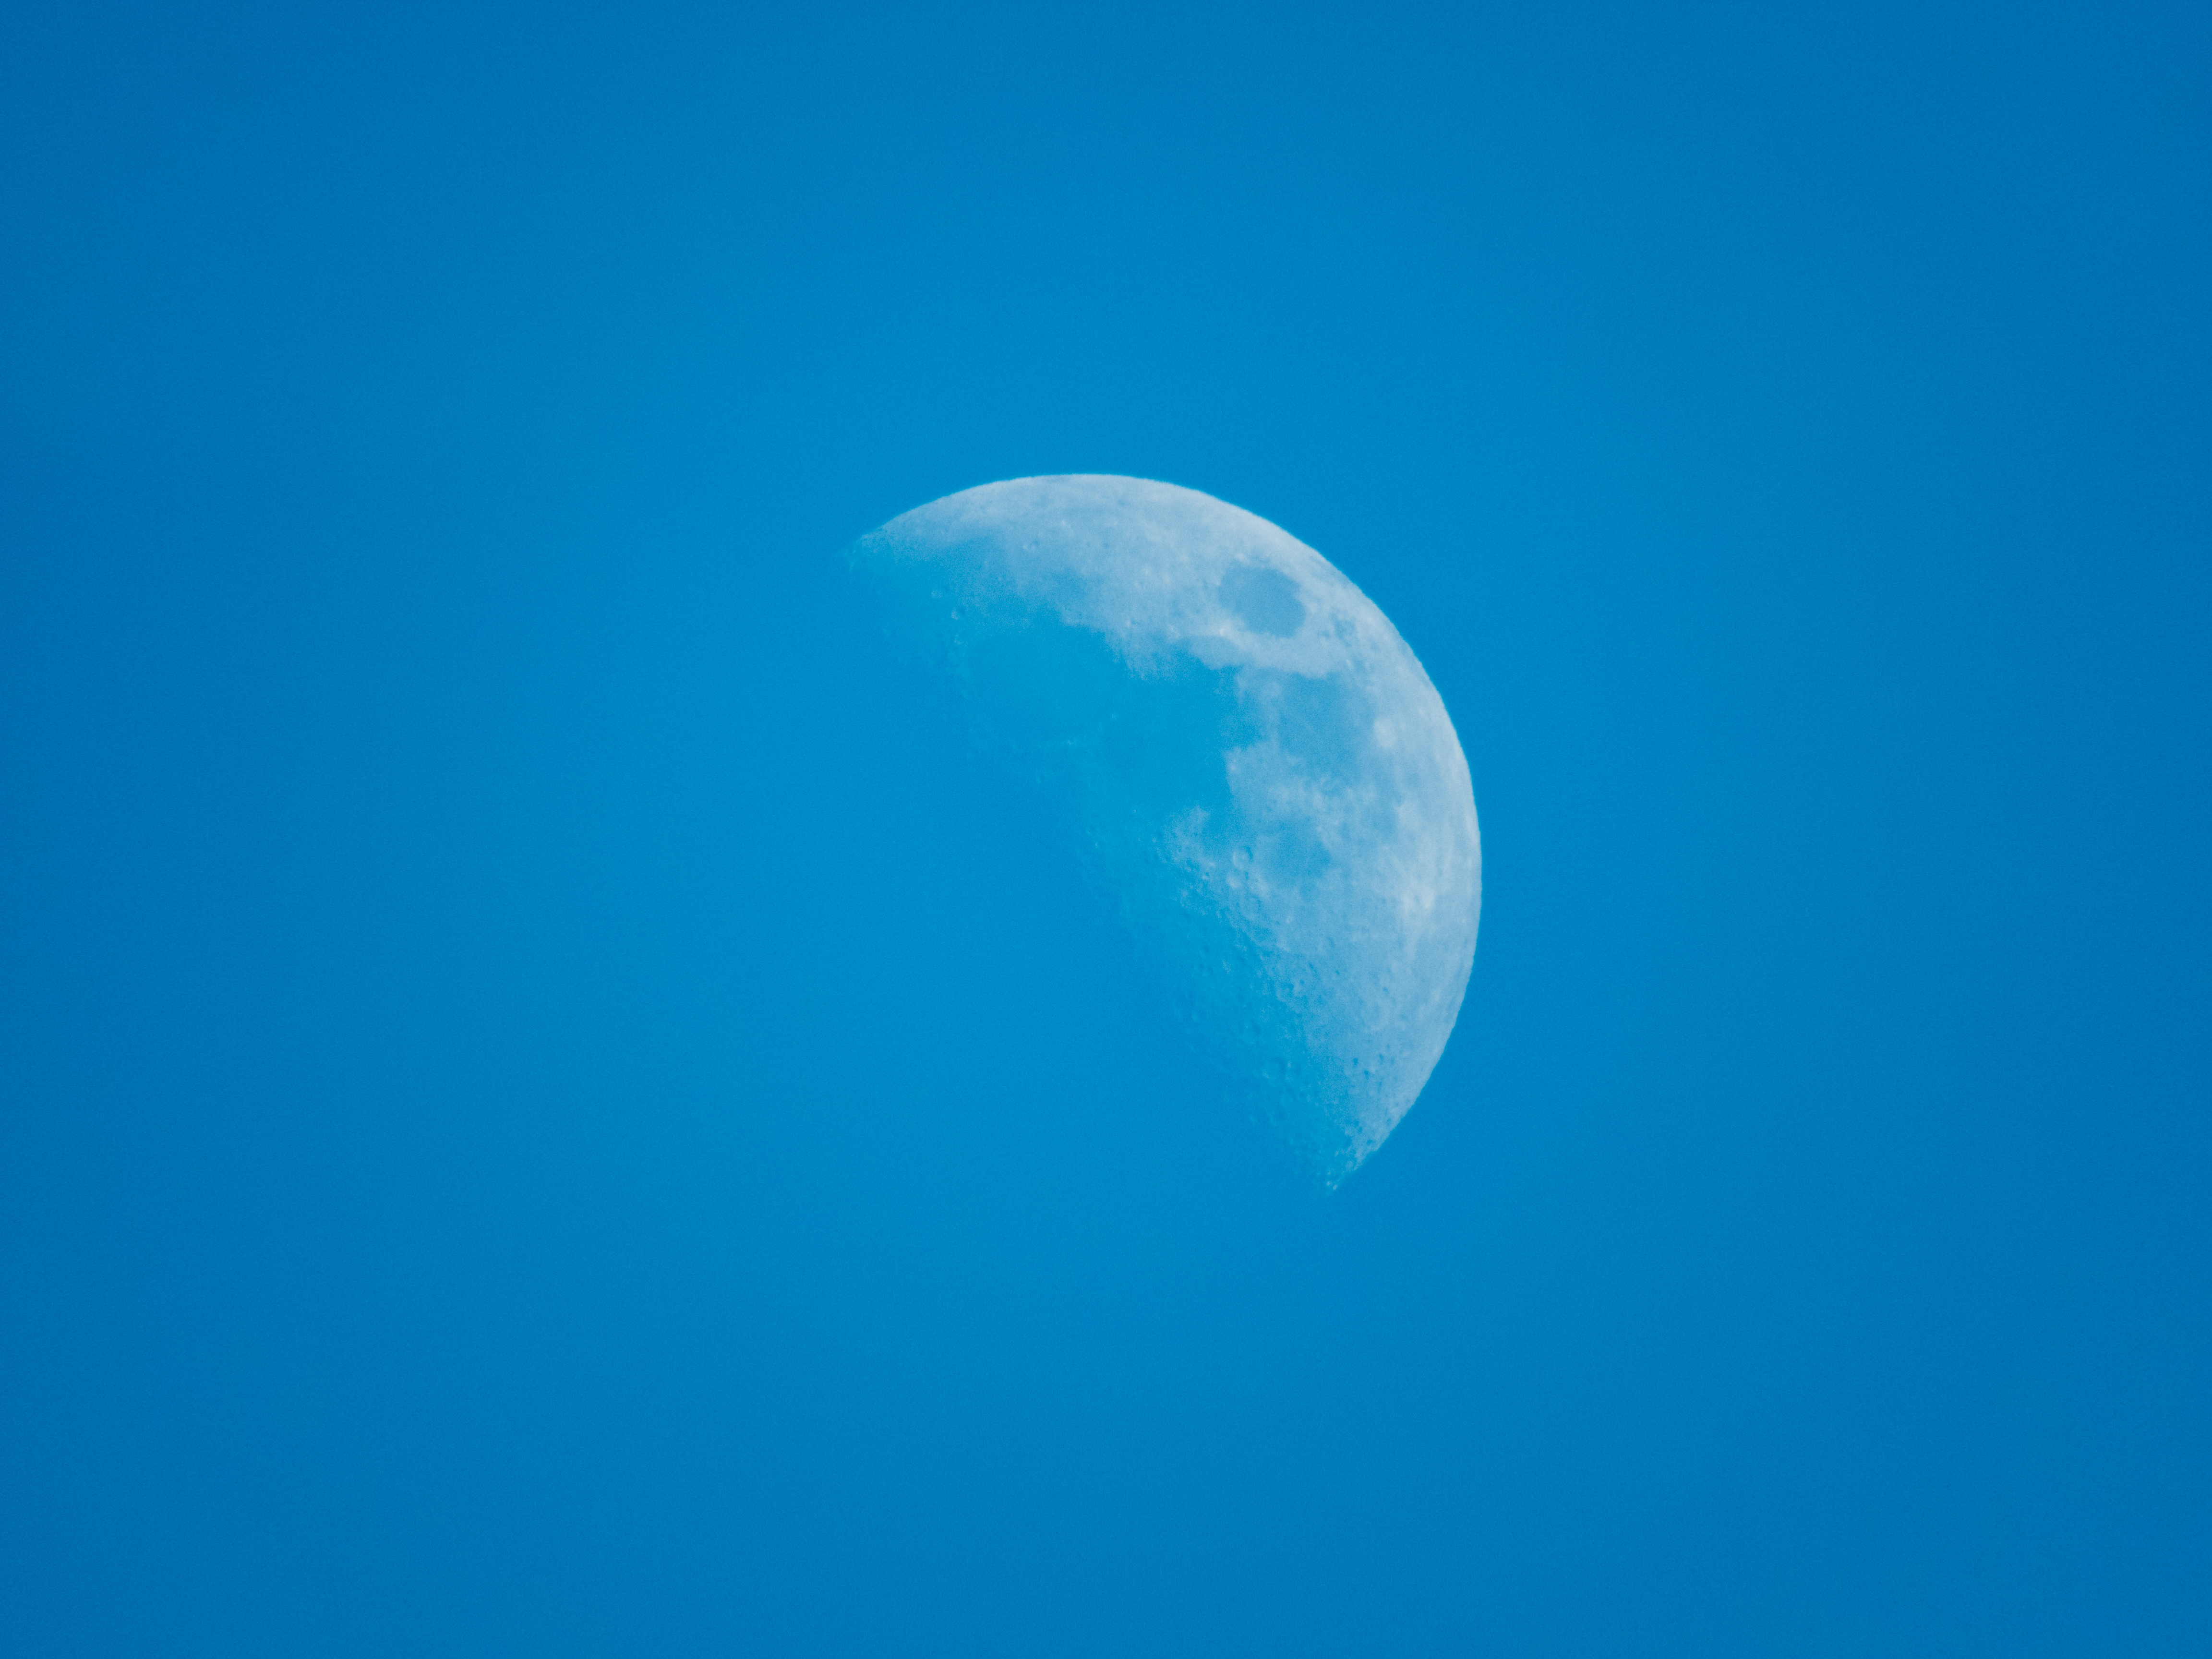 Picallscom Moon in the blue sky by Jeffrey Betts